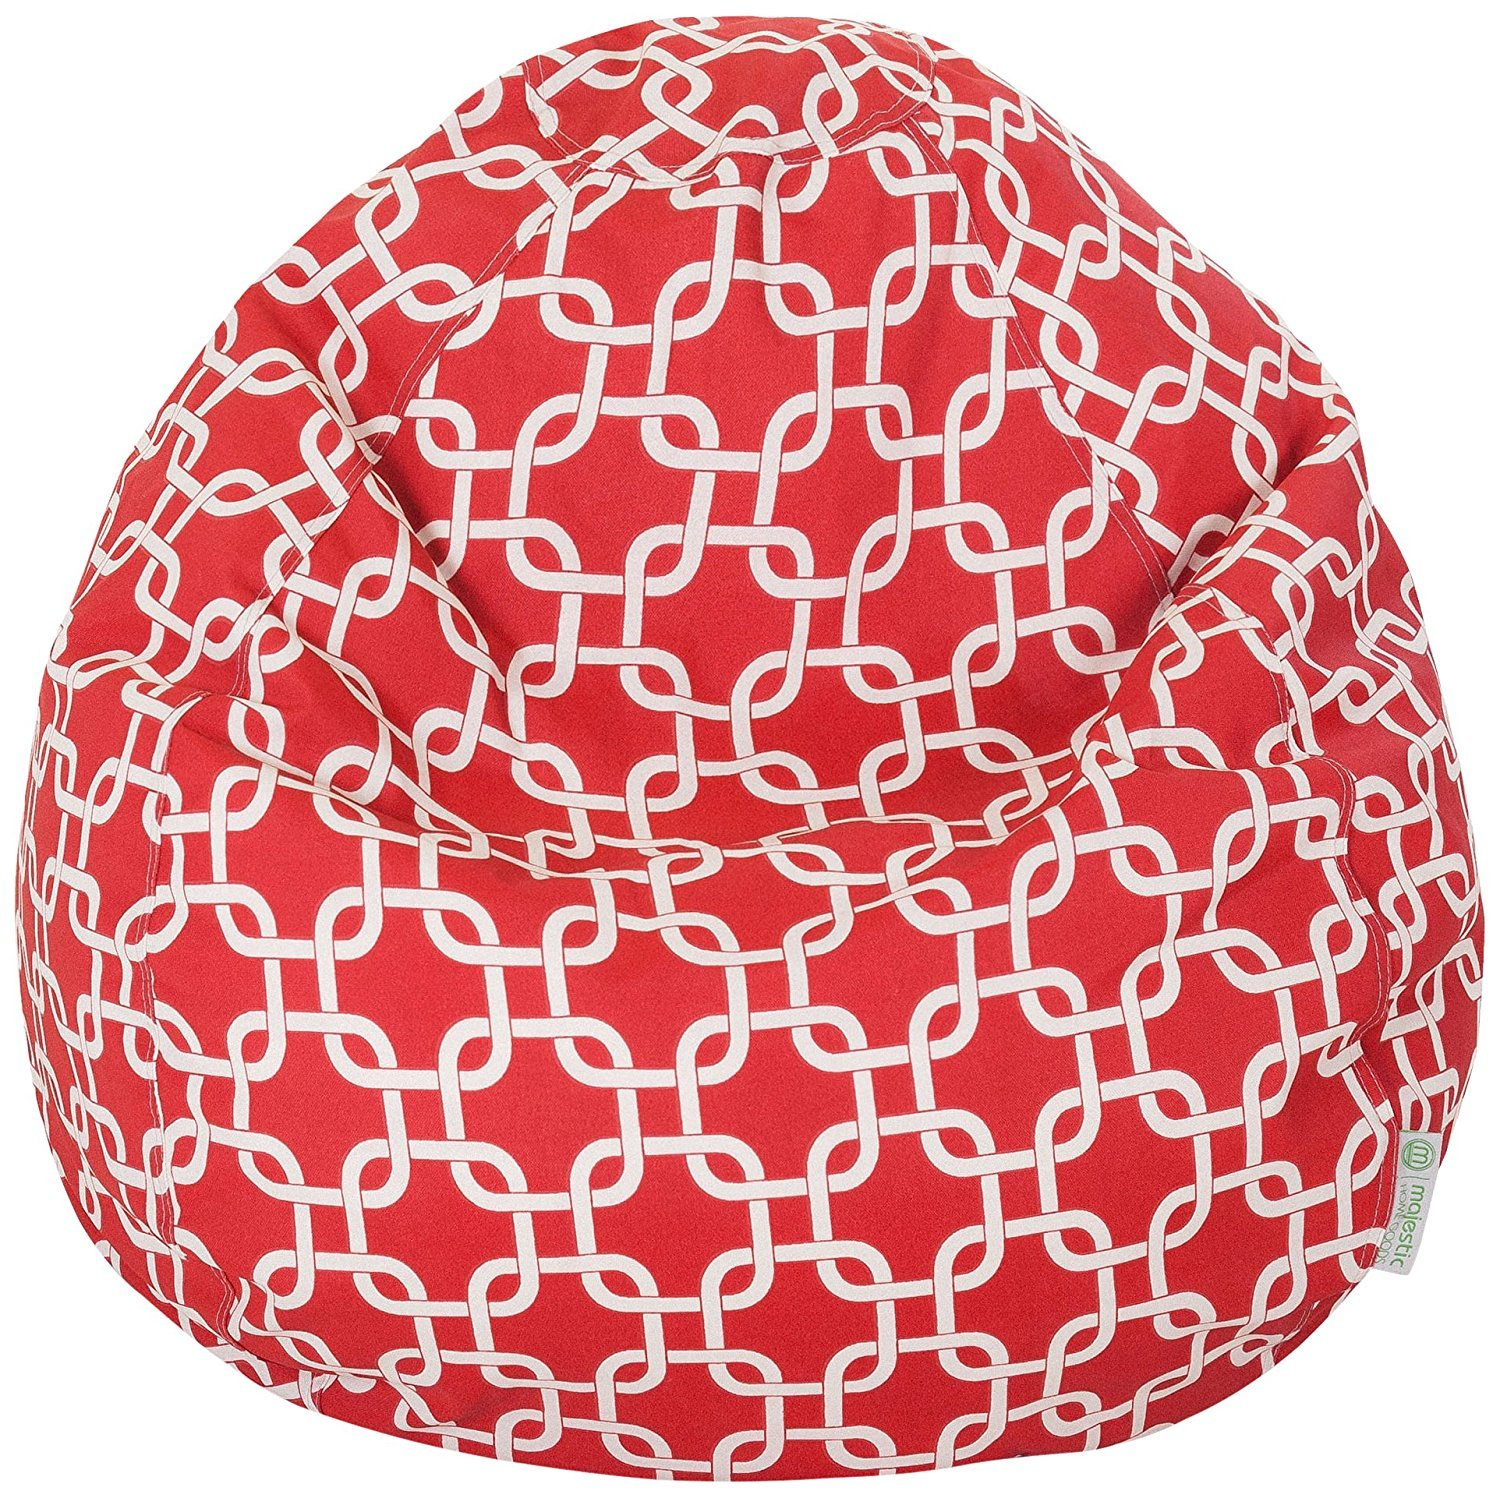 Majestic Home Goods Classic Bean Bag Chair - Links Giant Classic Bean Bags for Small Adults and Kids (28 x 28 x 22 Inches) (Red)